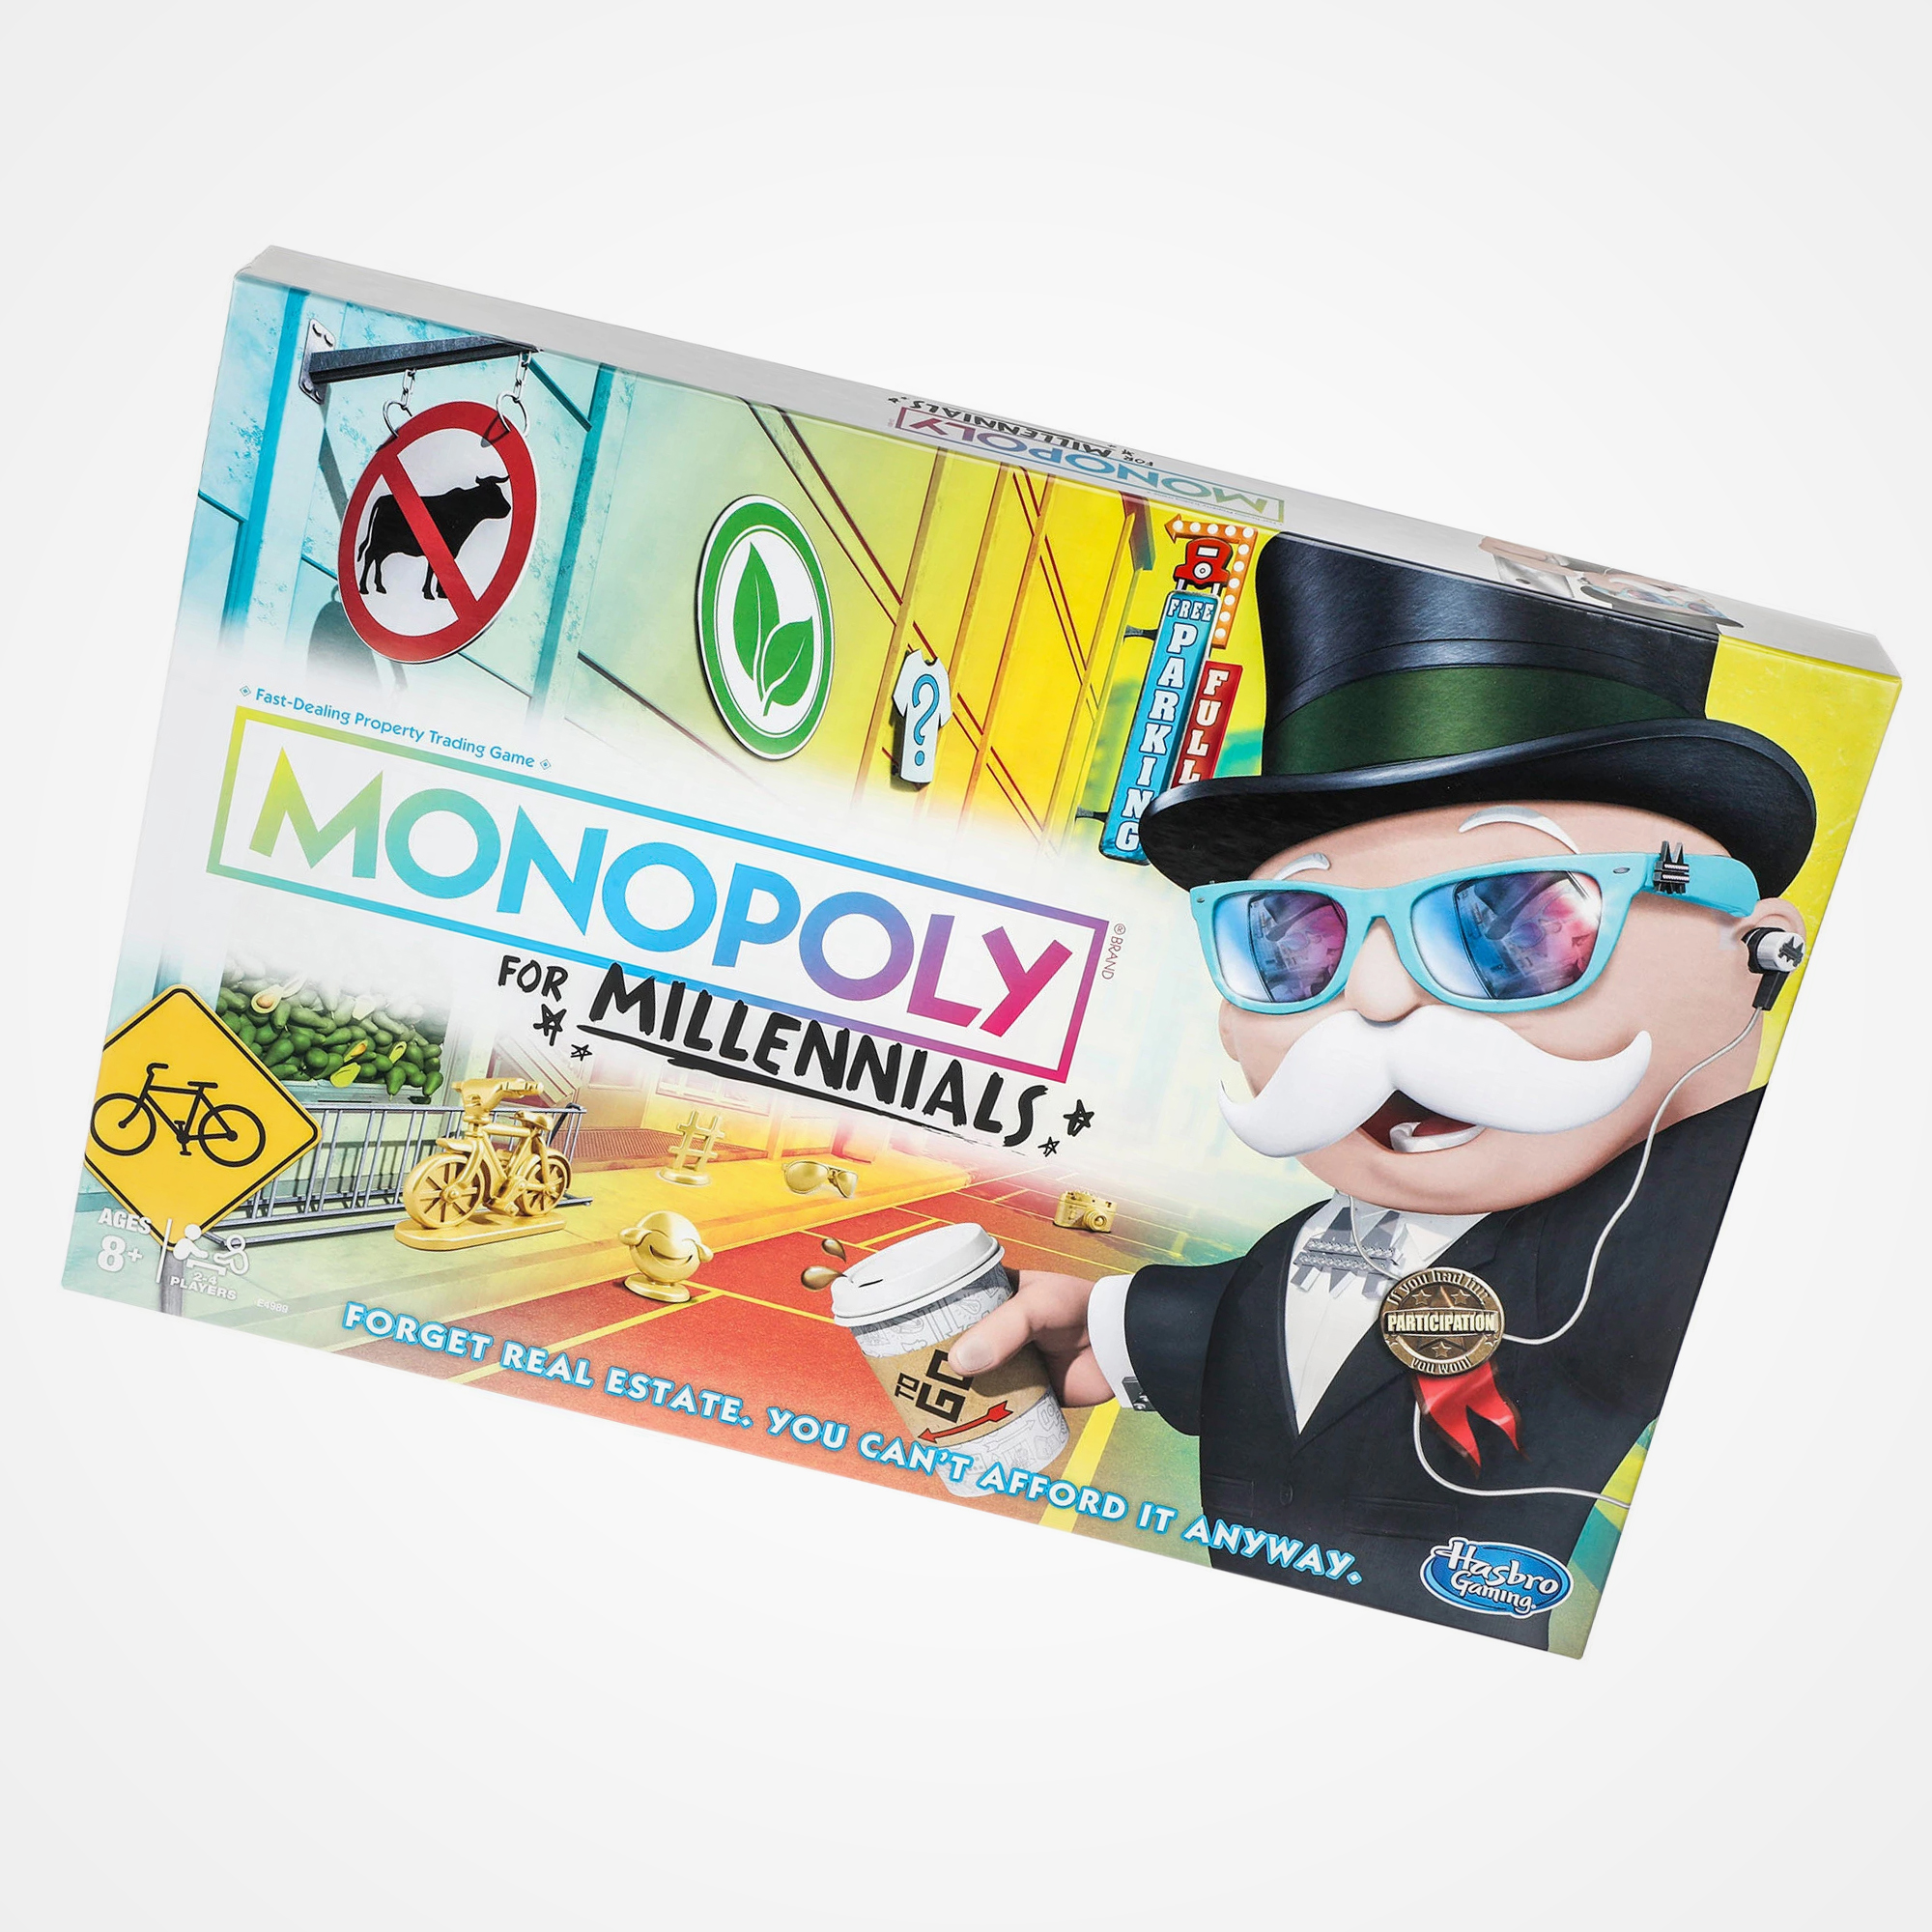 Millennials 'can't even' with the new Monopoly, where